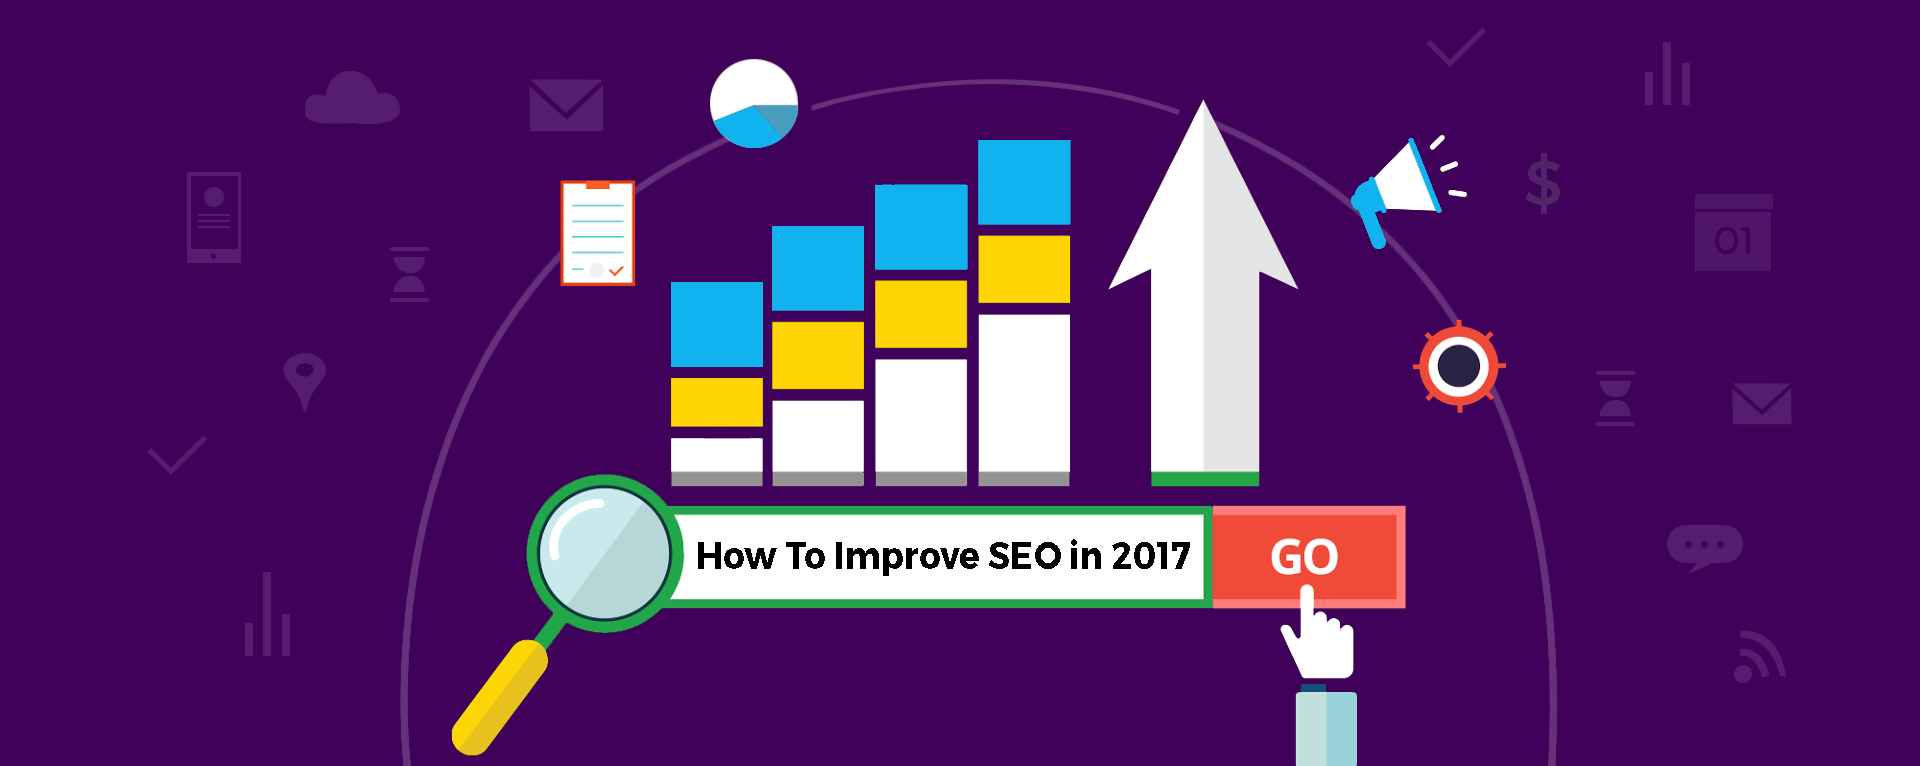 How To Improve SEO In 2017